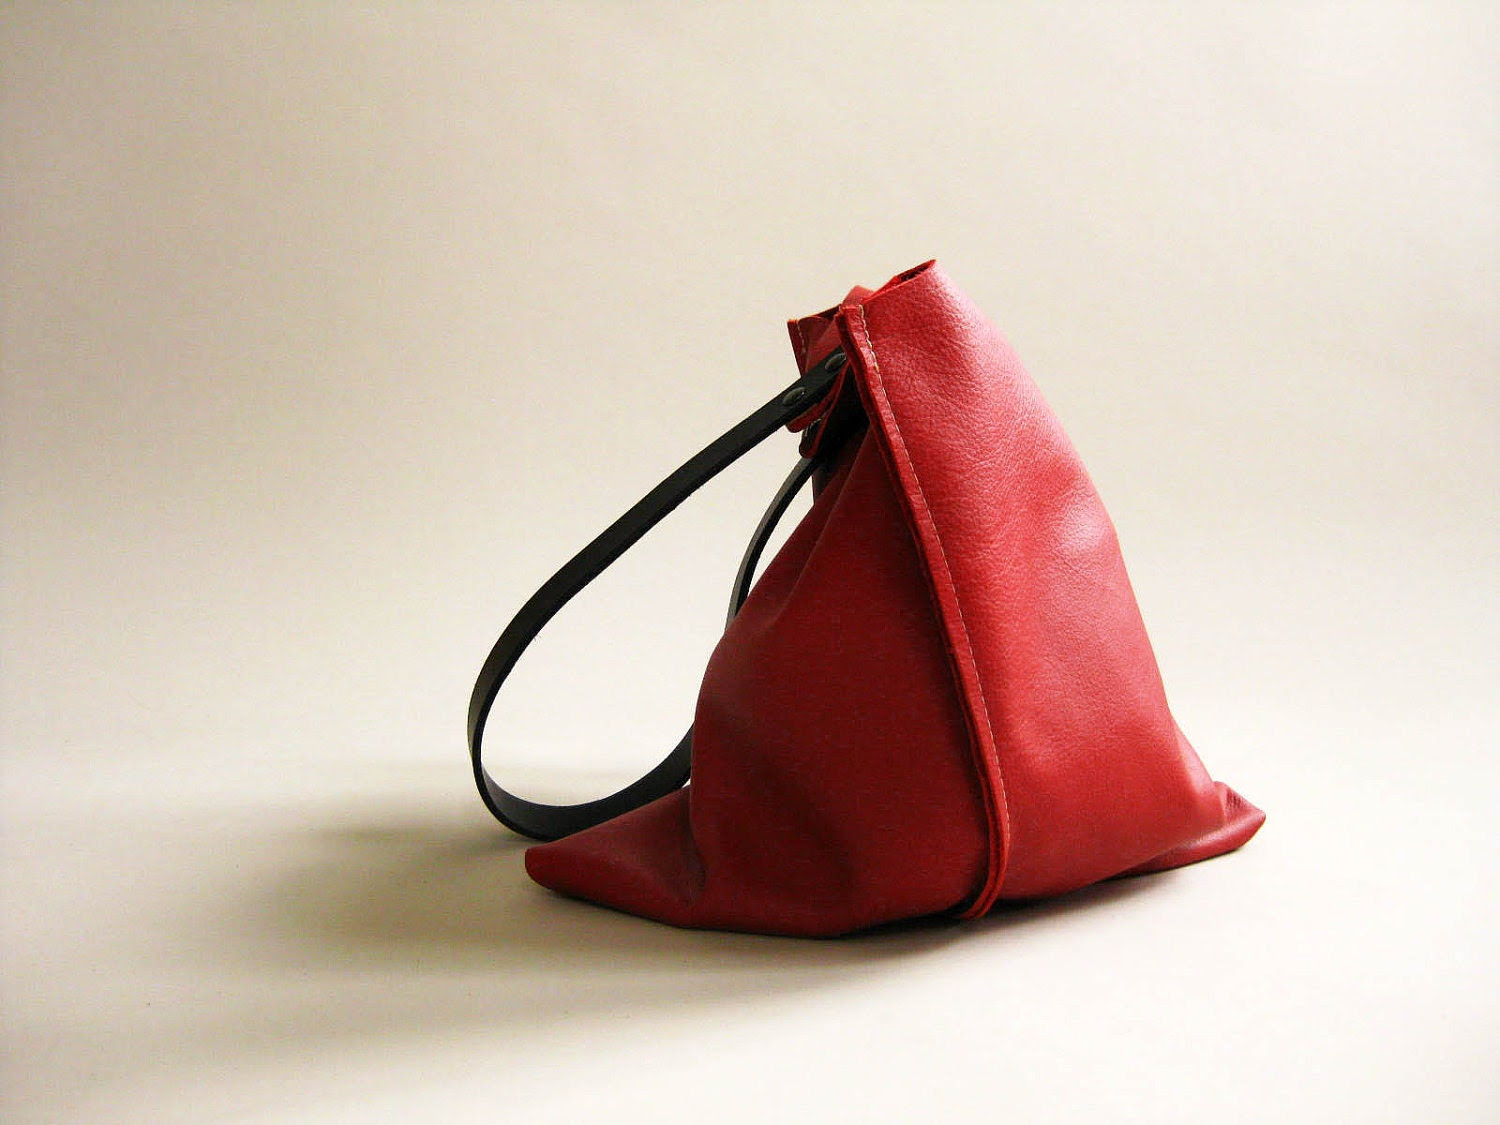 13in Wedge NEW - Primary collection - Classic Red leather